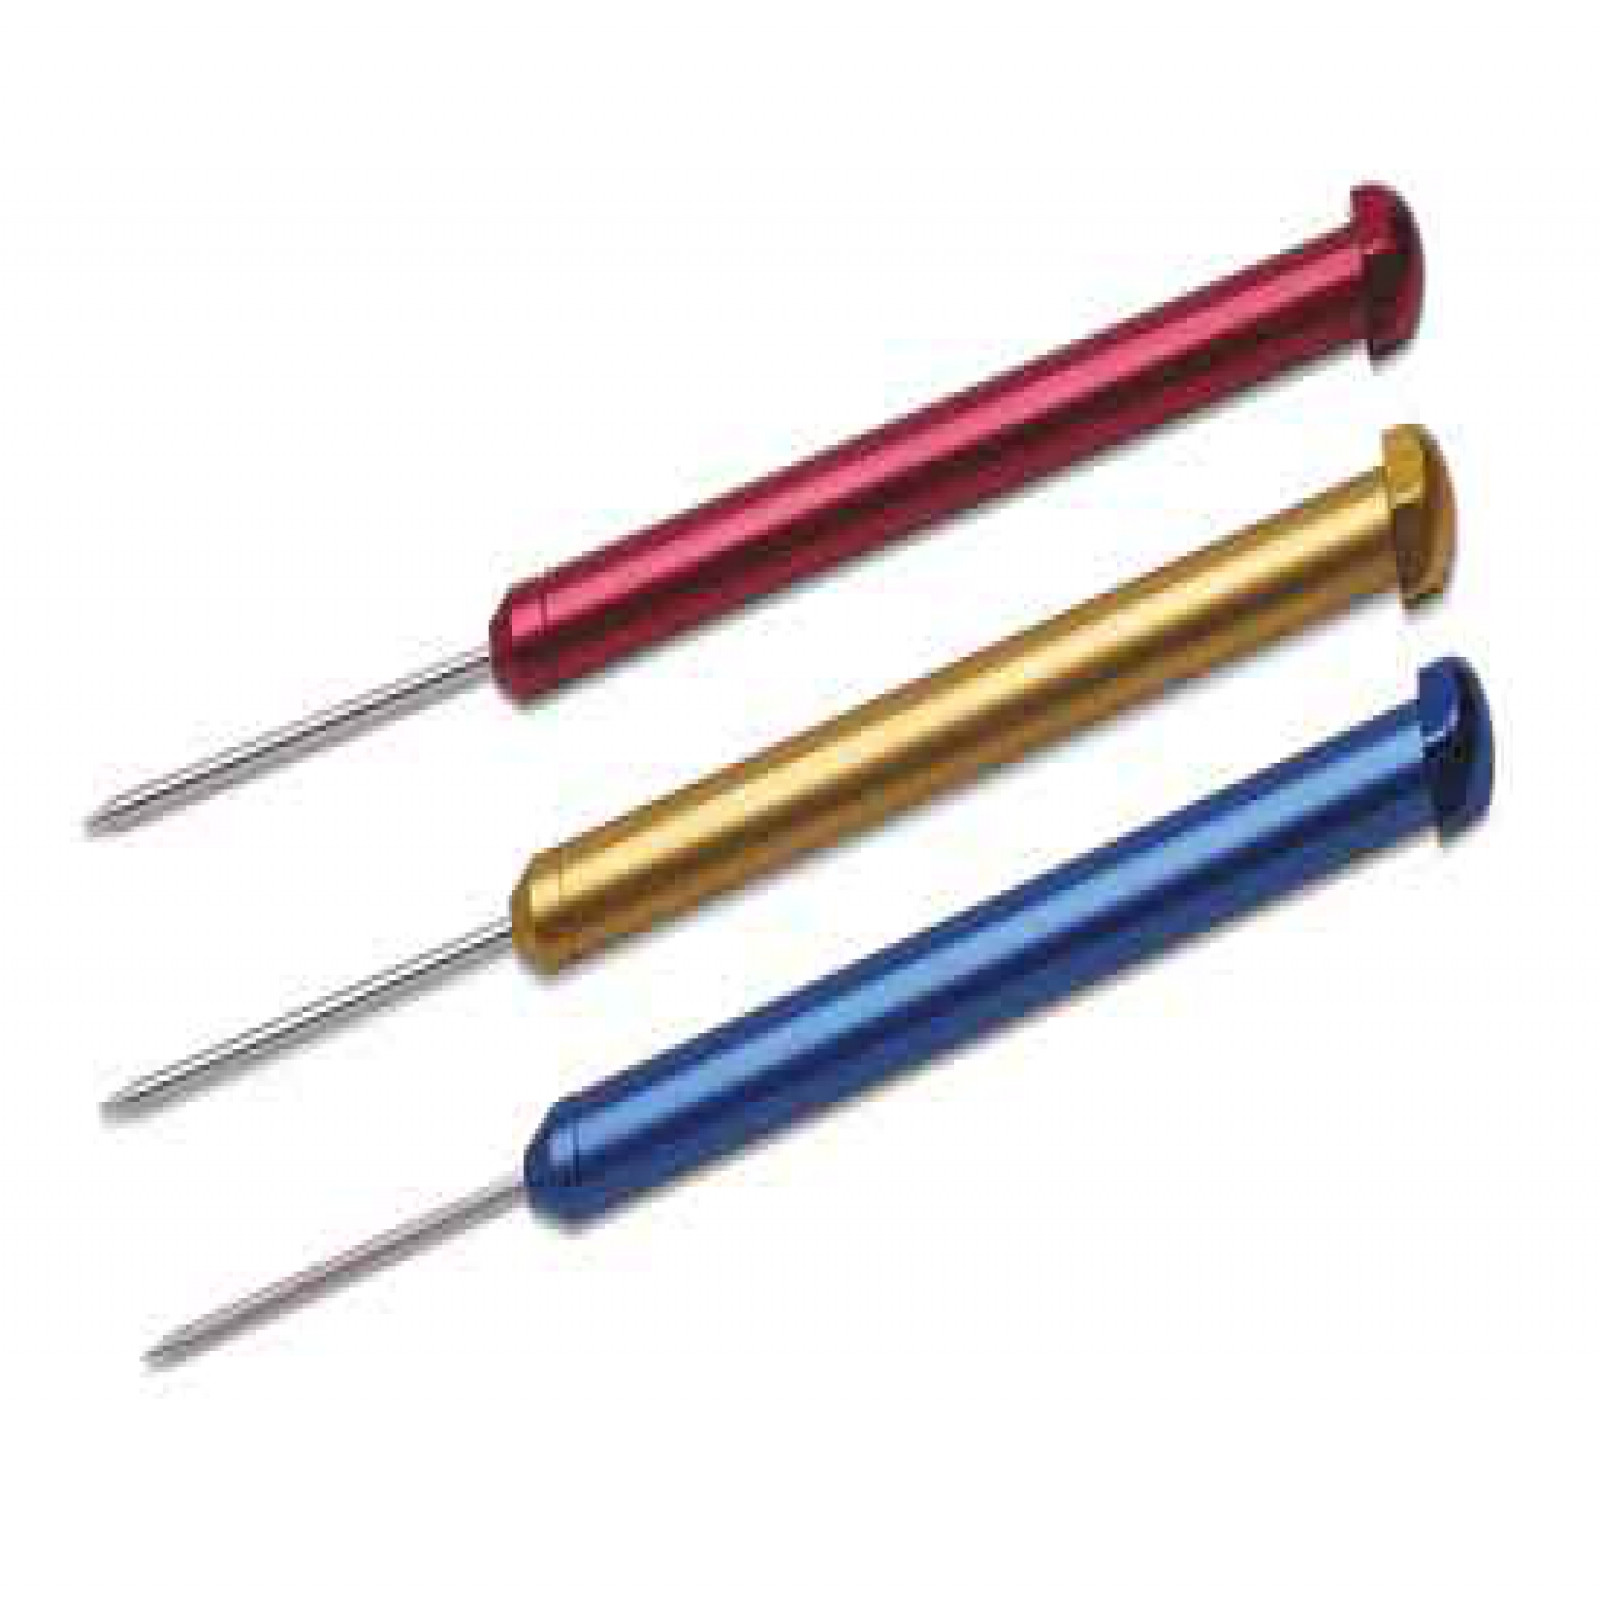 3-PC. TITANIUM SOLDERING SET